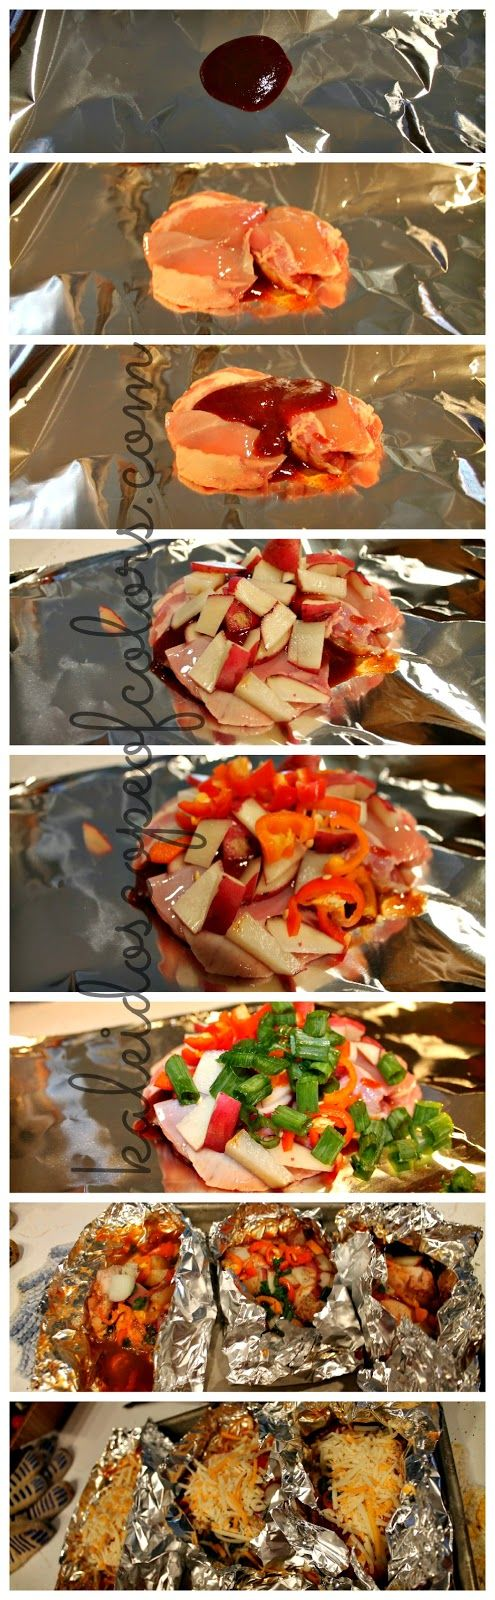 Fast bbq Chicken Recipes for Dinner | Preheat oven to 375*. Place foil sheet, around a 12x12 piece on the ...